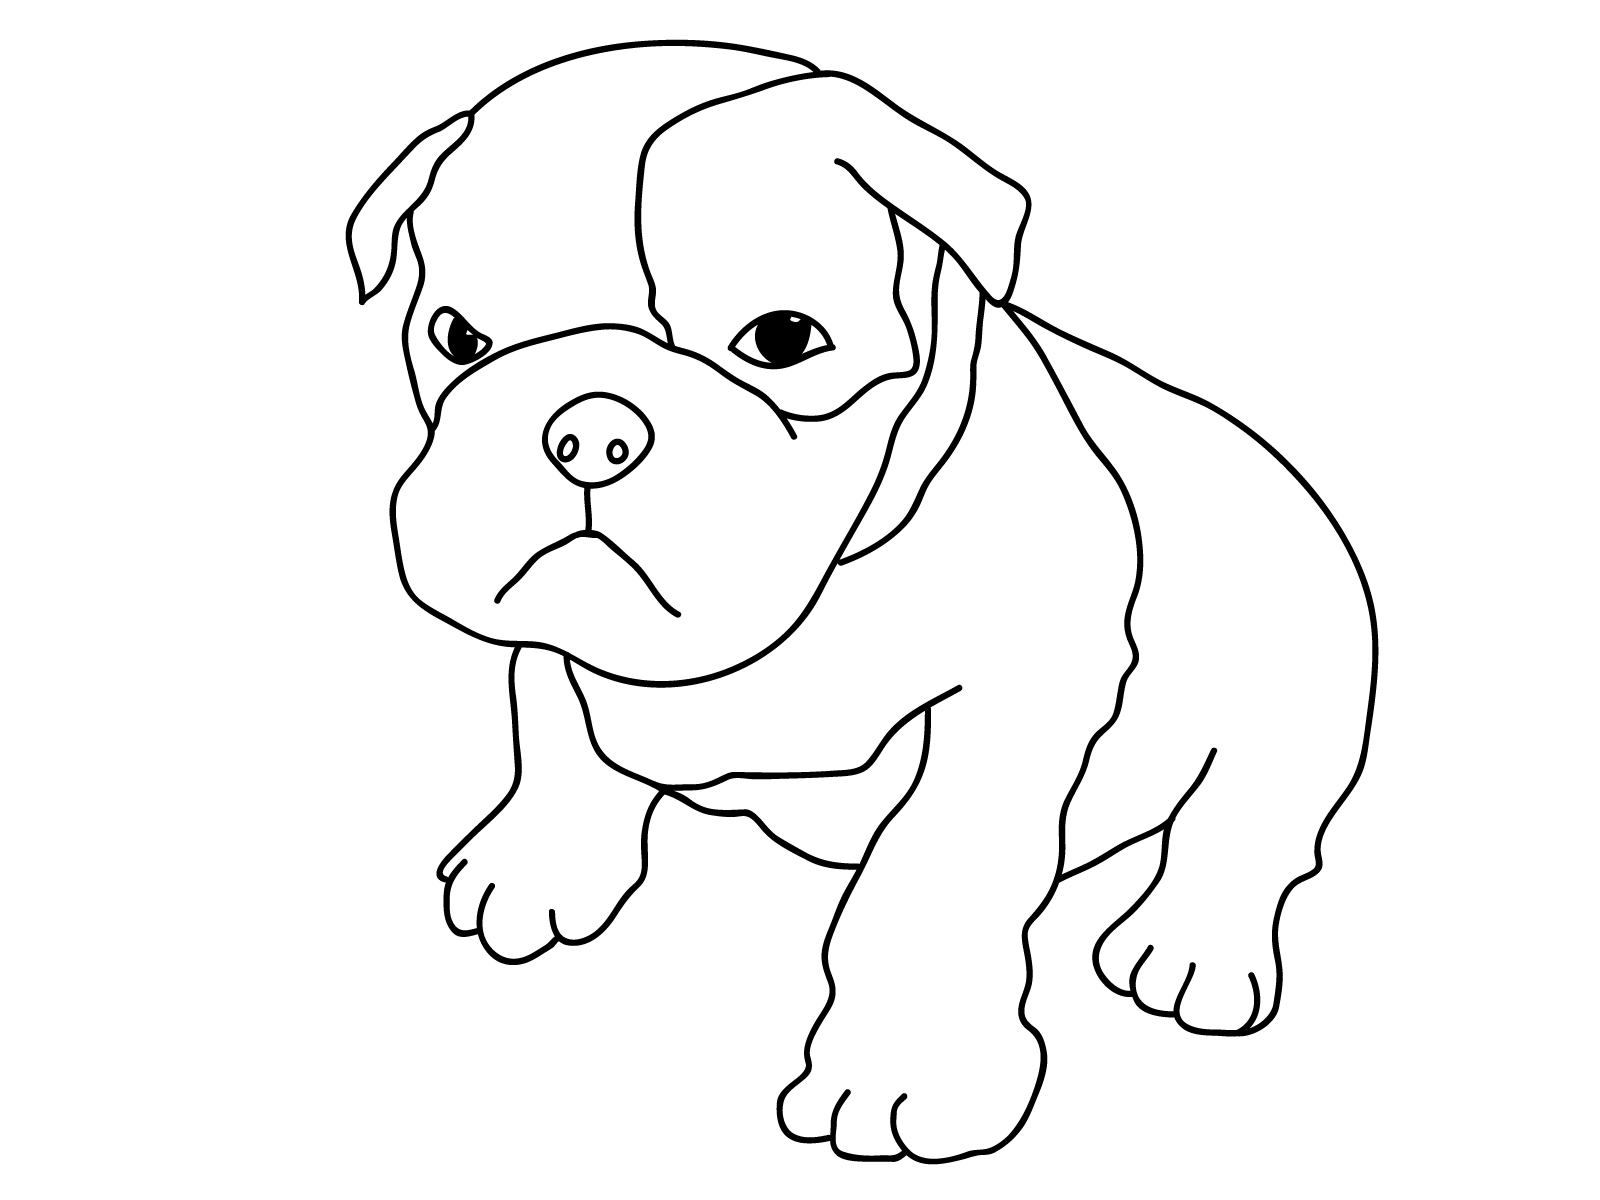 1600x1200 Big Dog Colouring In Free Printable Coloring Pages For Kids